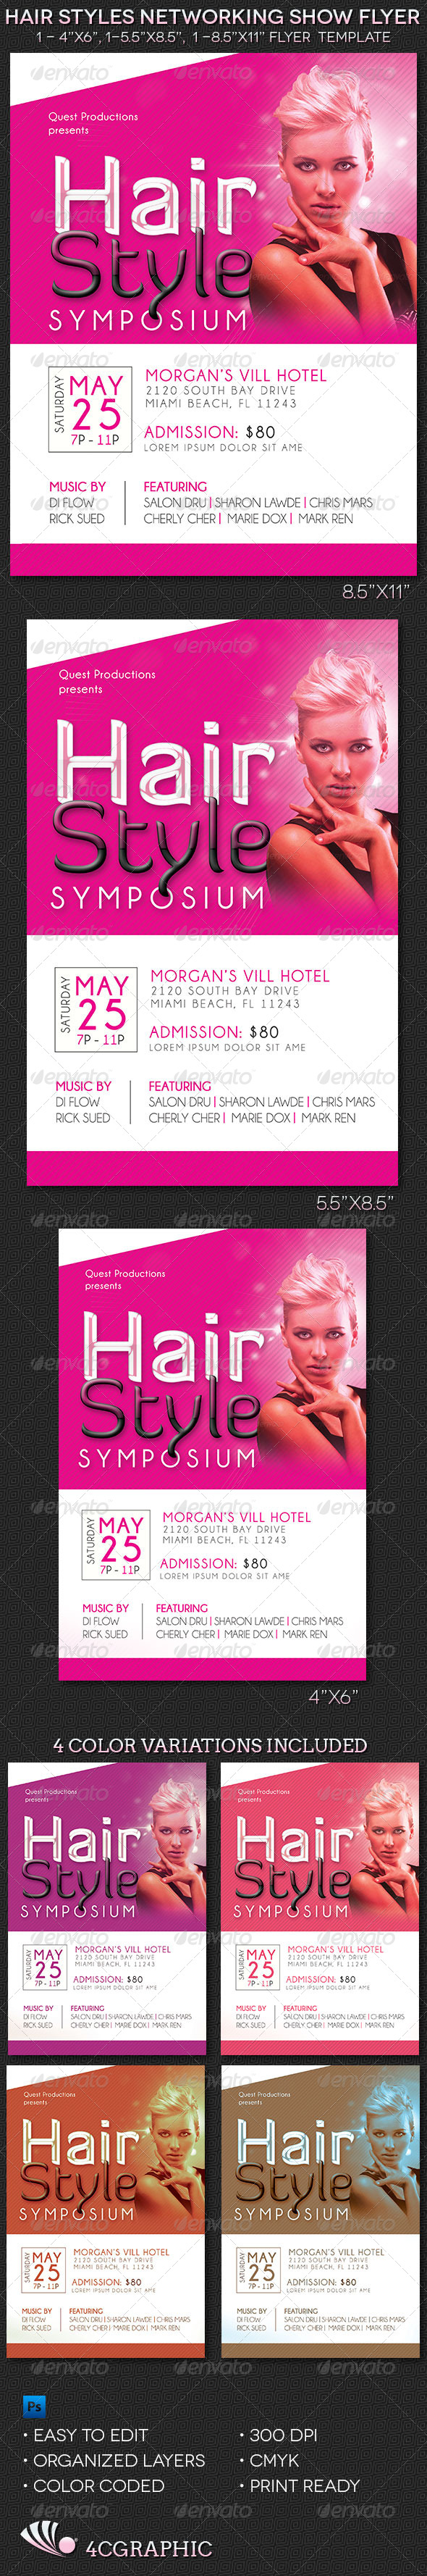 Hair Styles Networking Show Flyer Template - Events Flyers